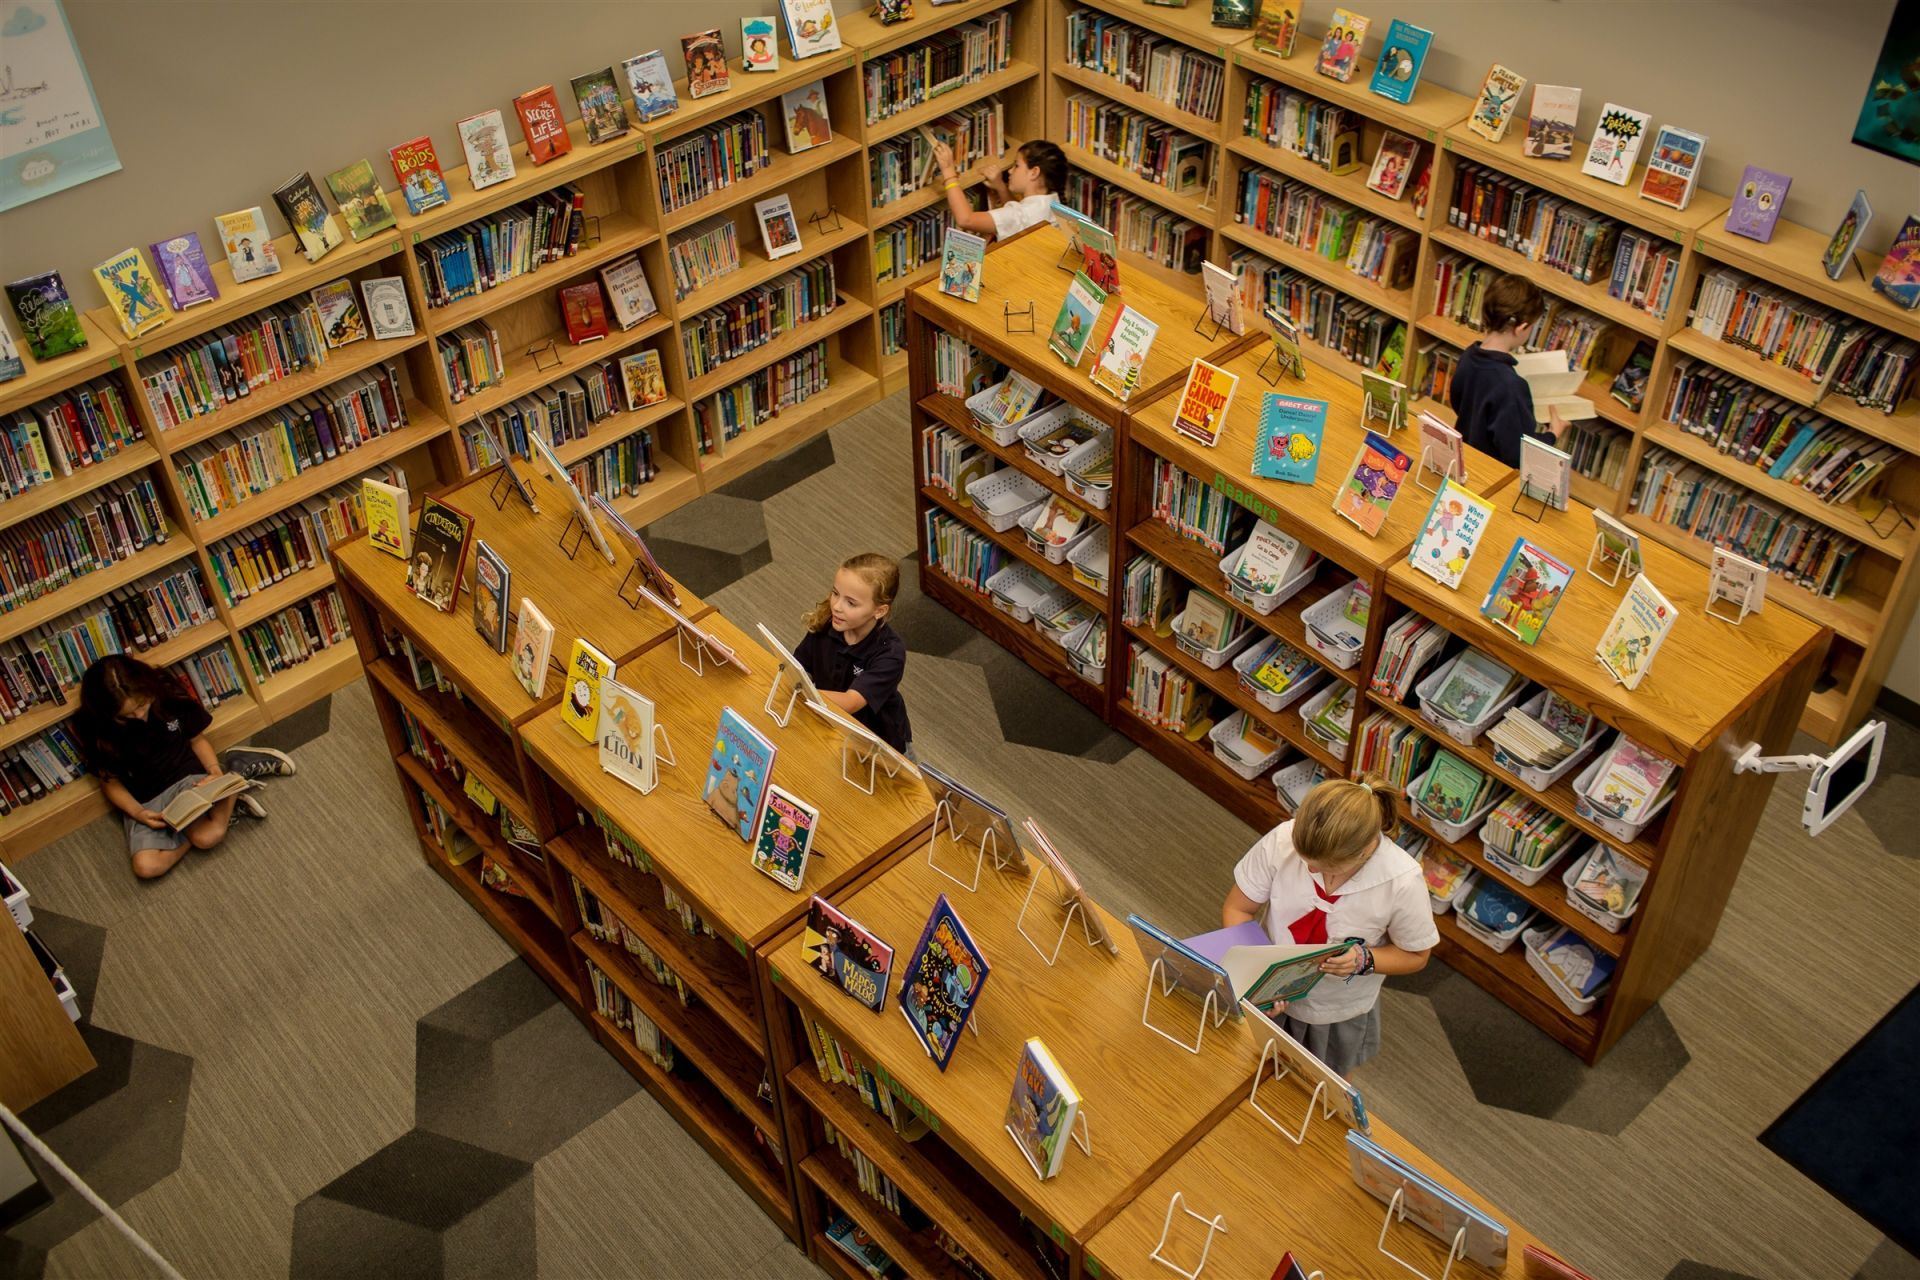 Students can follow their own interests in the Discovery Center library.